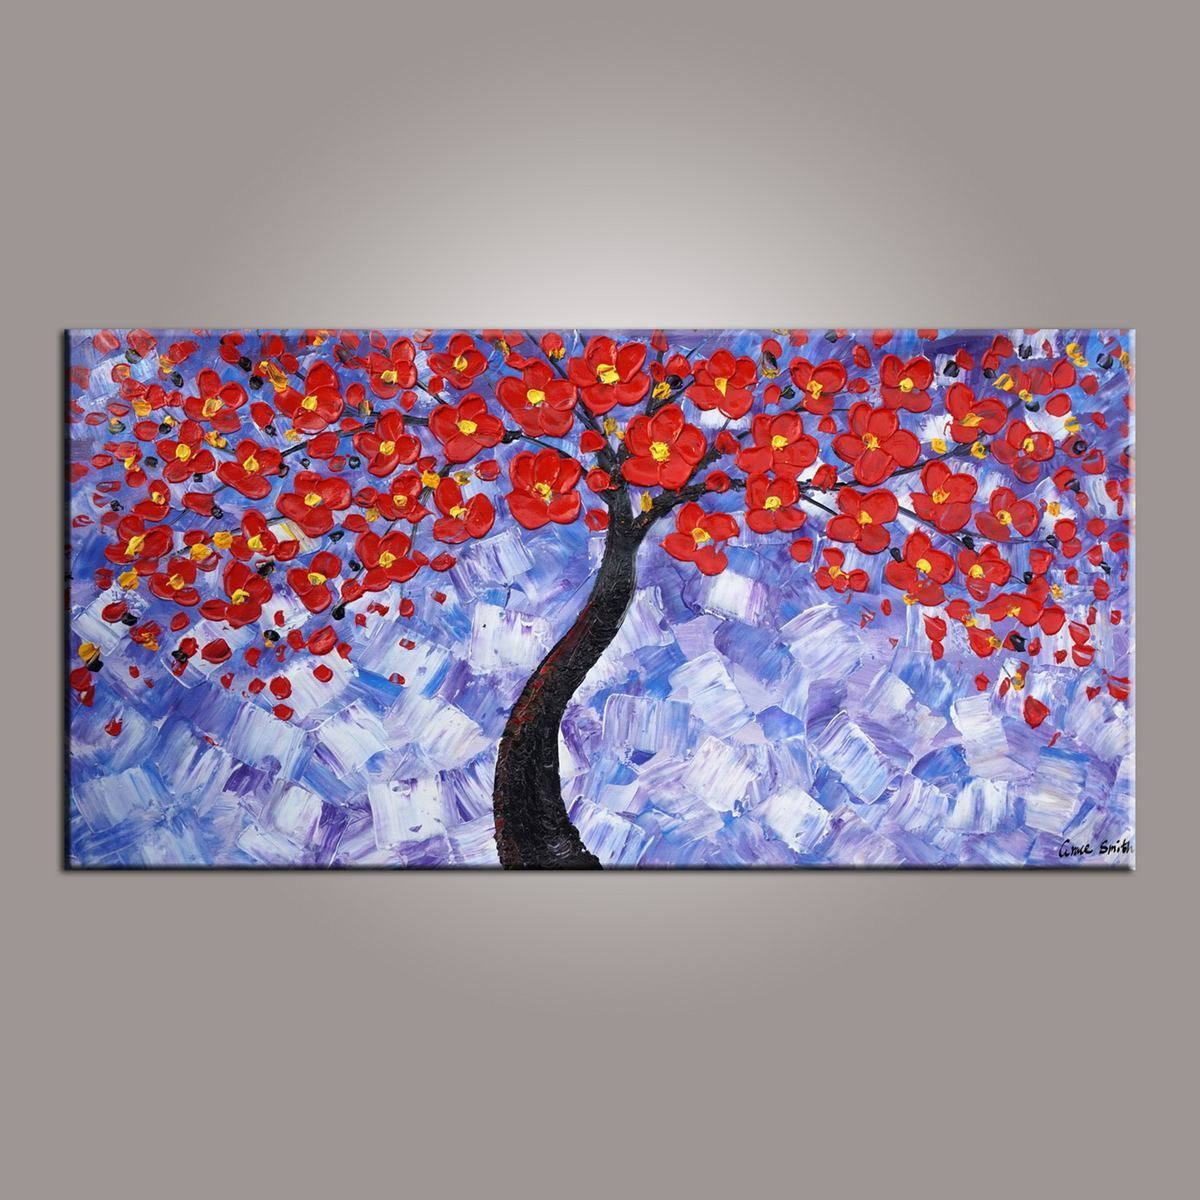 Painting on Sale, Flower Art, Abstract Art Painting, Tree Painting, Canvas Wall Art, Bedroom Wall Art, Canvas Art, Modern Art, Contemporary Art - artworkcanvas